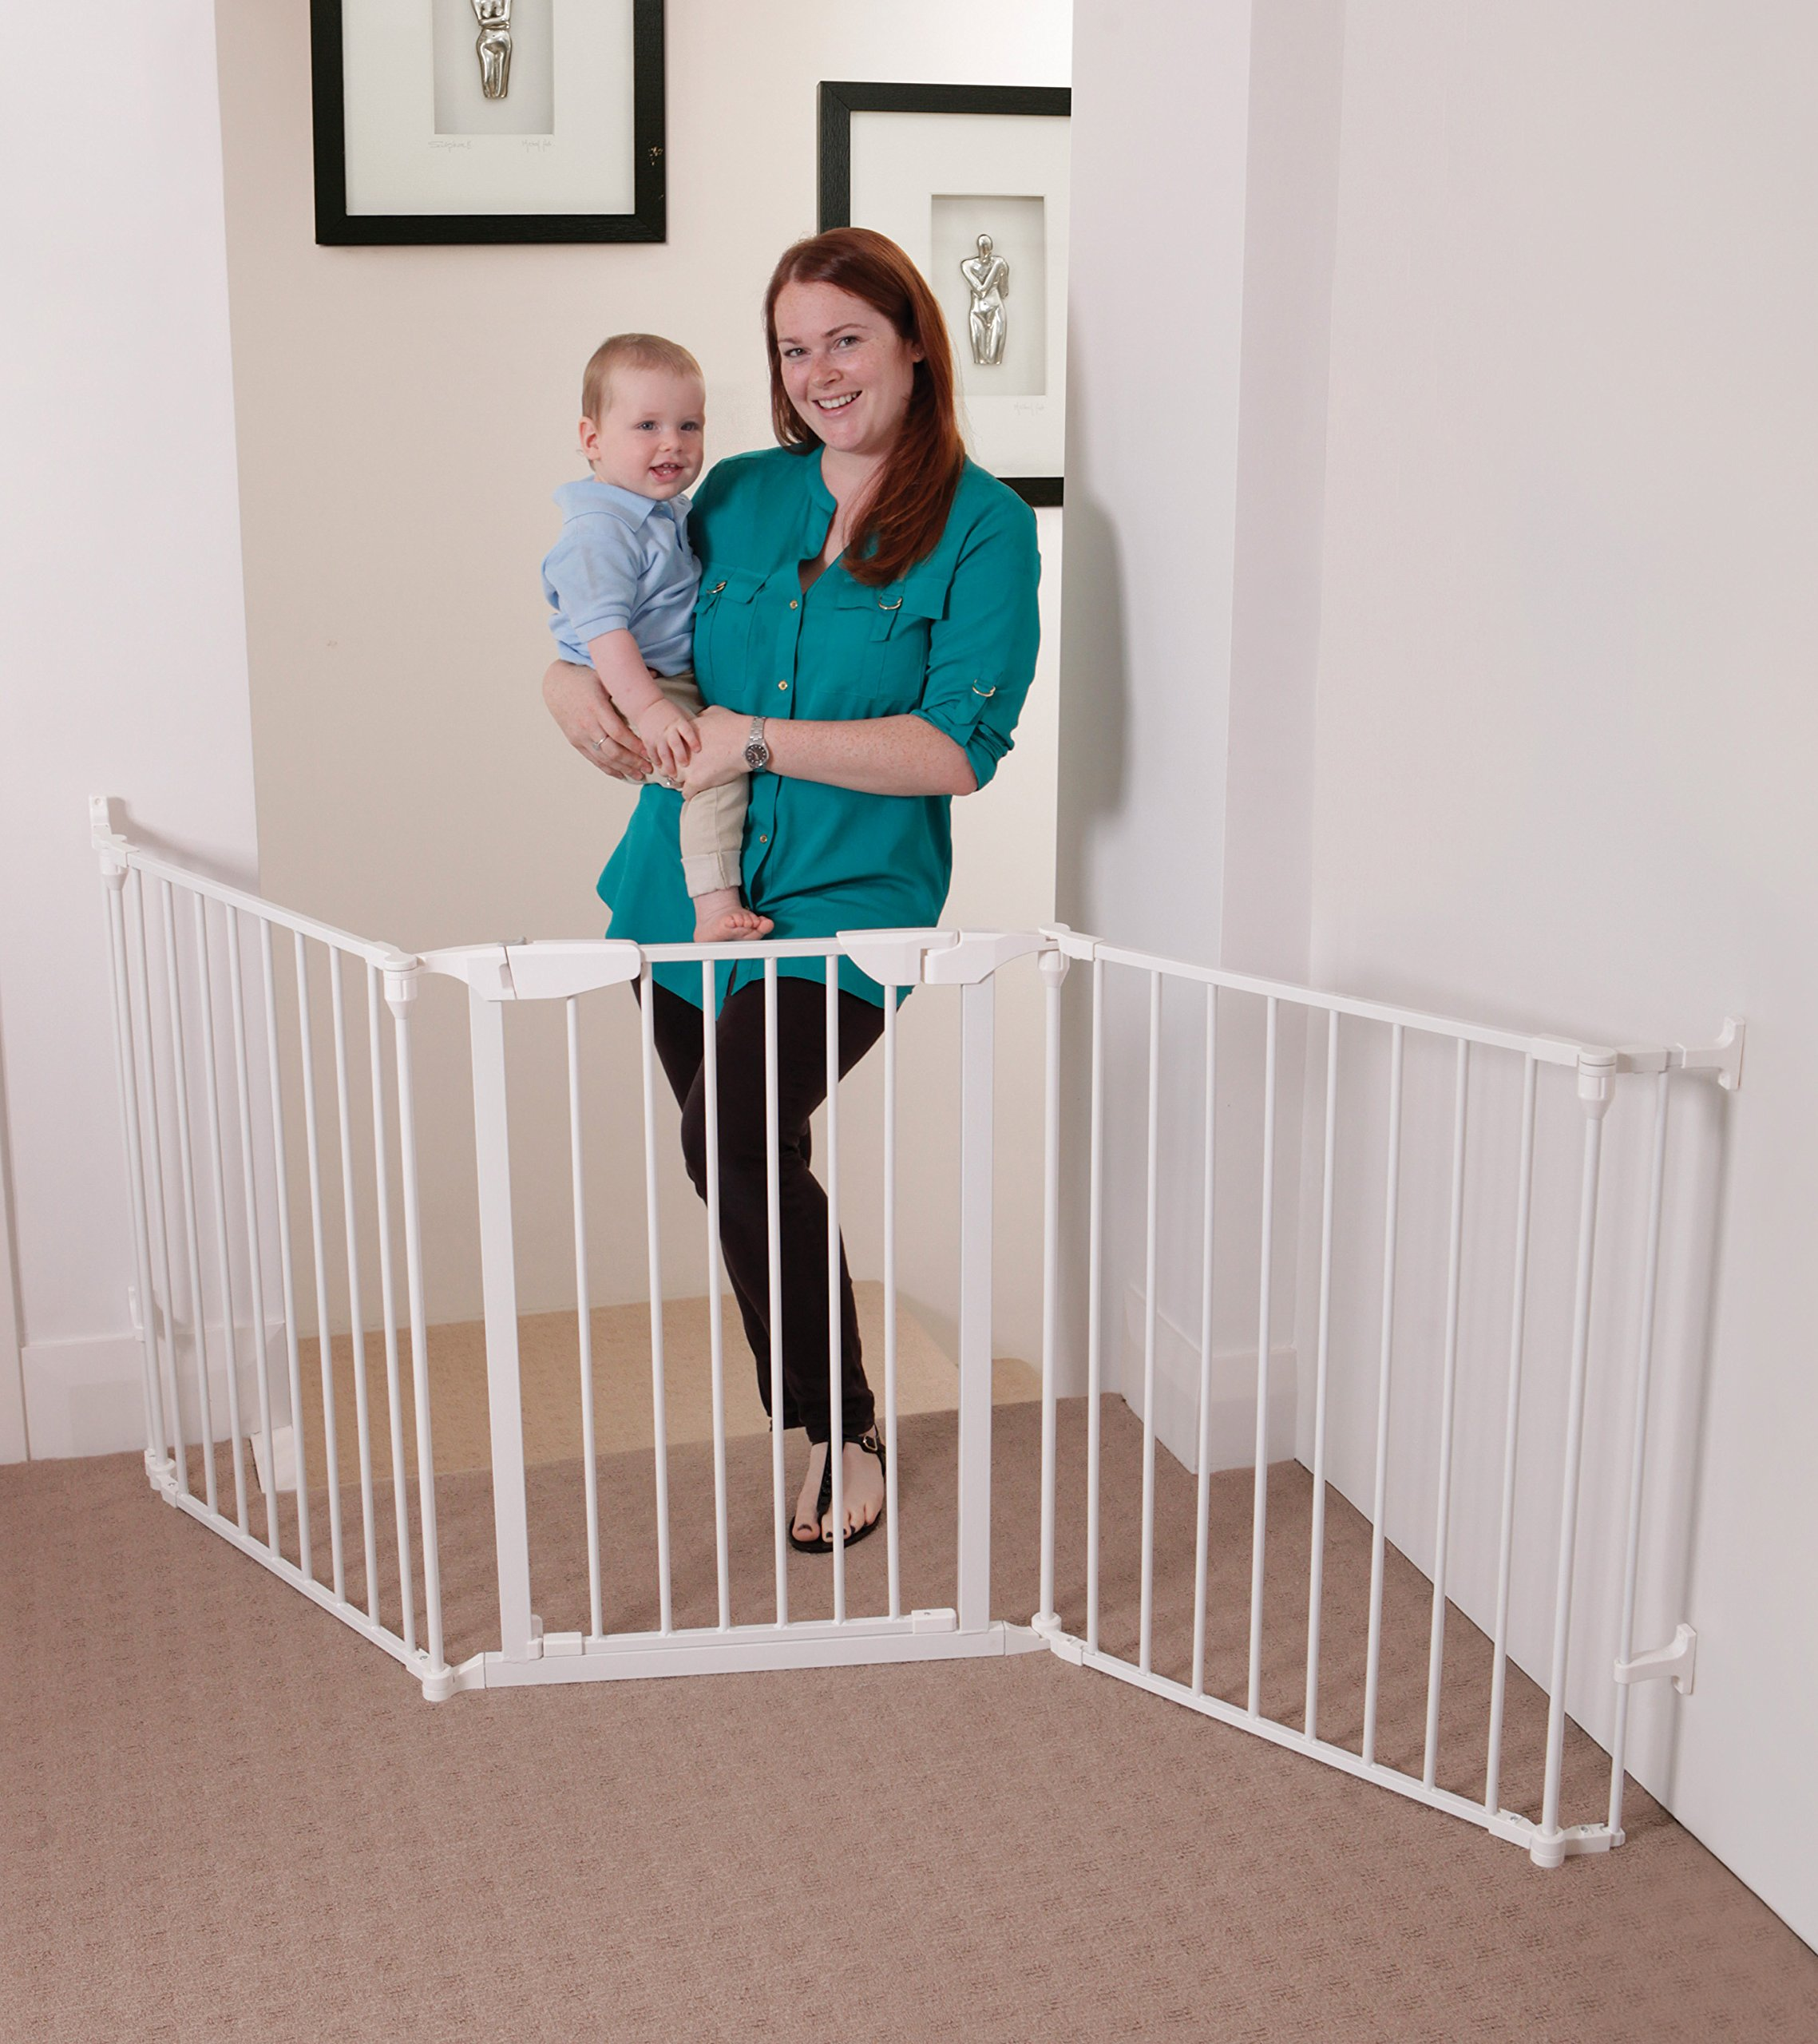 Dreambaby Newport Adapta Gate (White) by Dreambaby (Image #8)